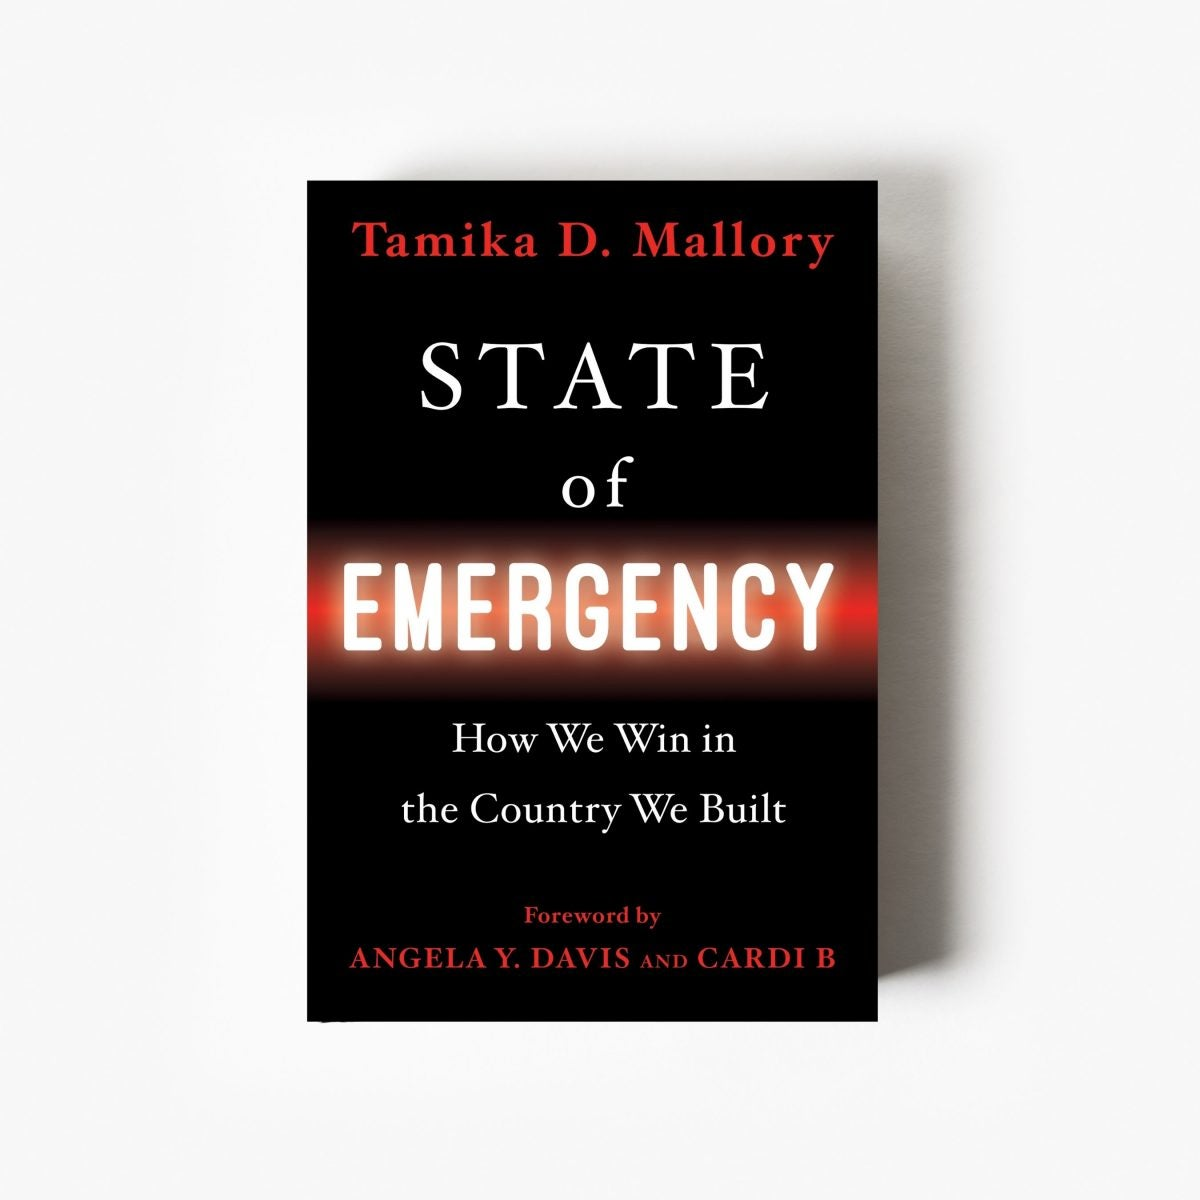 State of Emergency Tamika Mallory